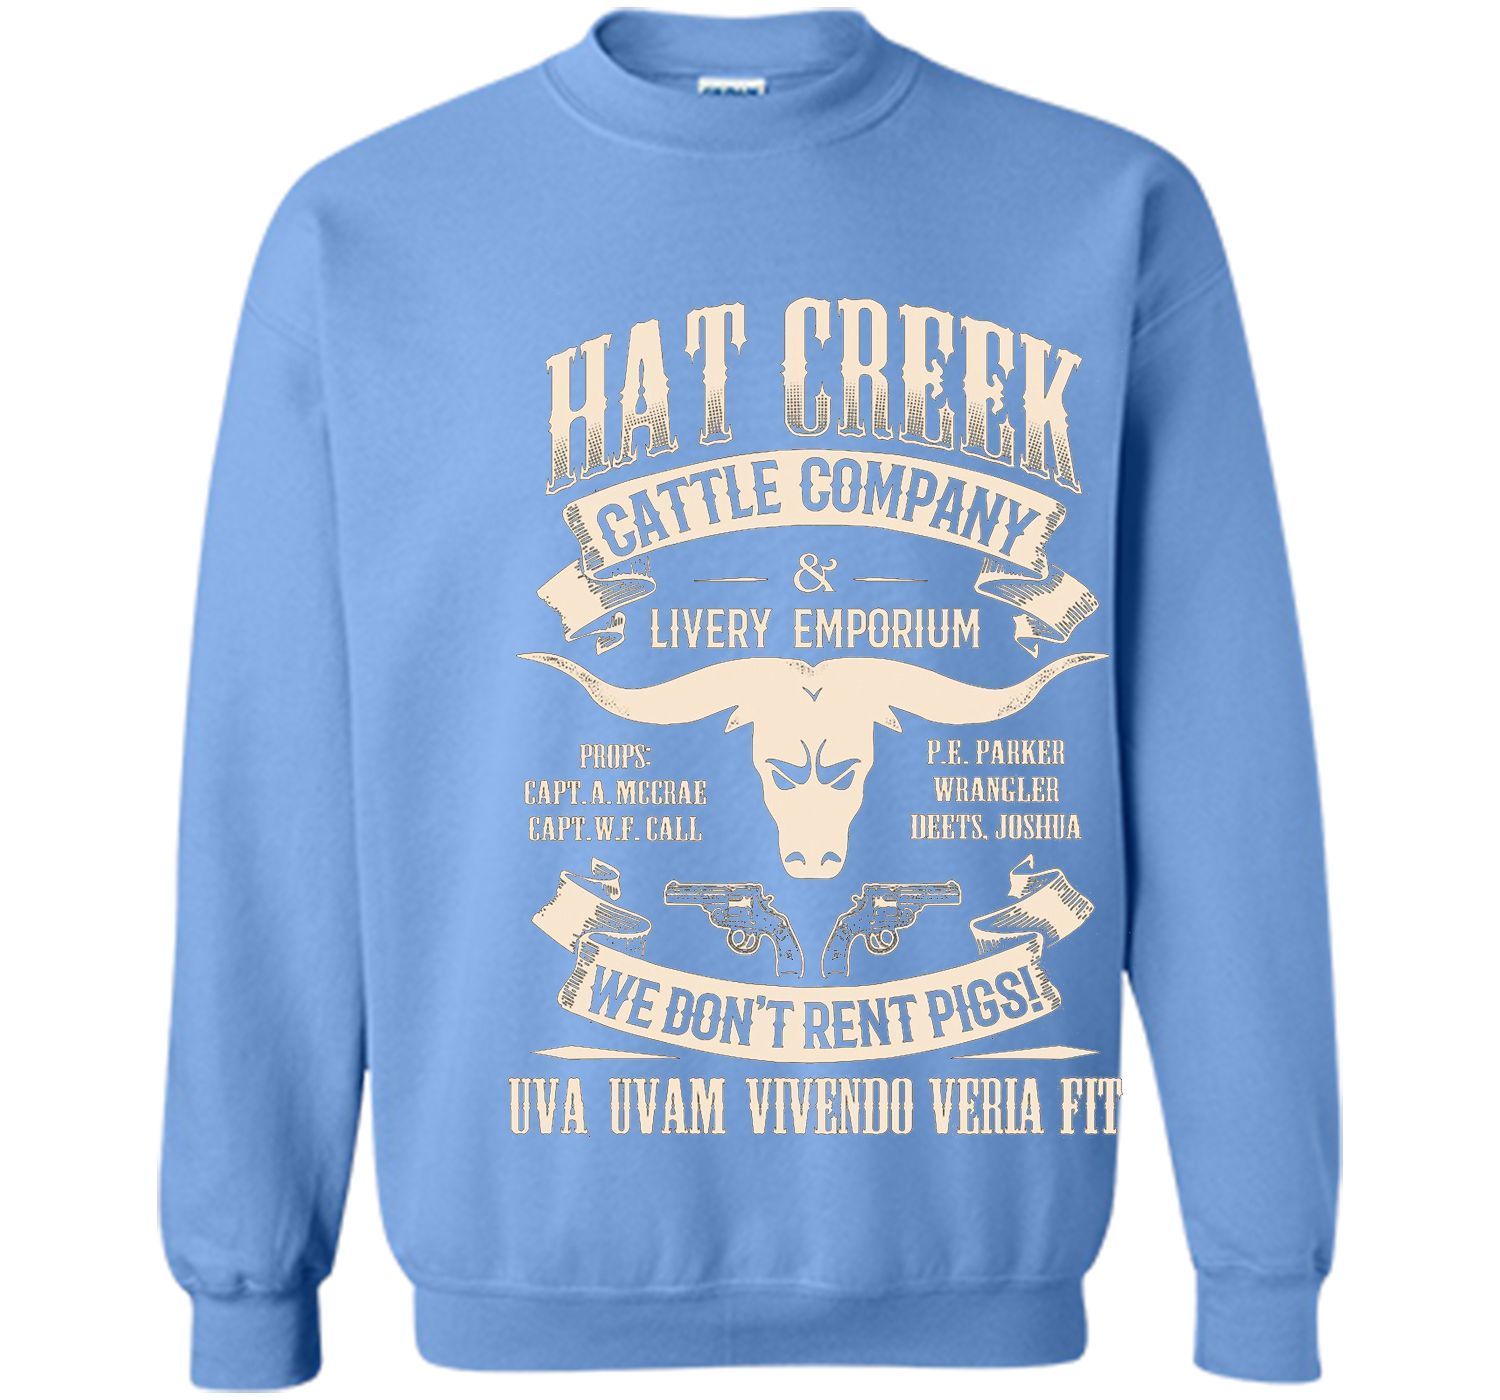 185f63d1561 Lonesome dove hat creek cattle company shirt products pinterest jpg  1500x1400 Cattle company lonesome dove logo